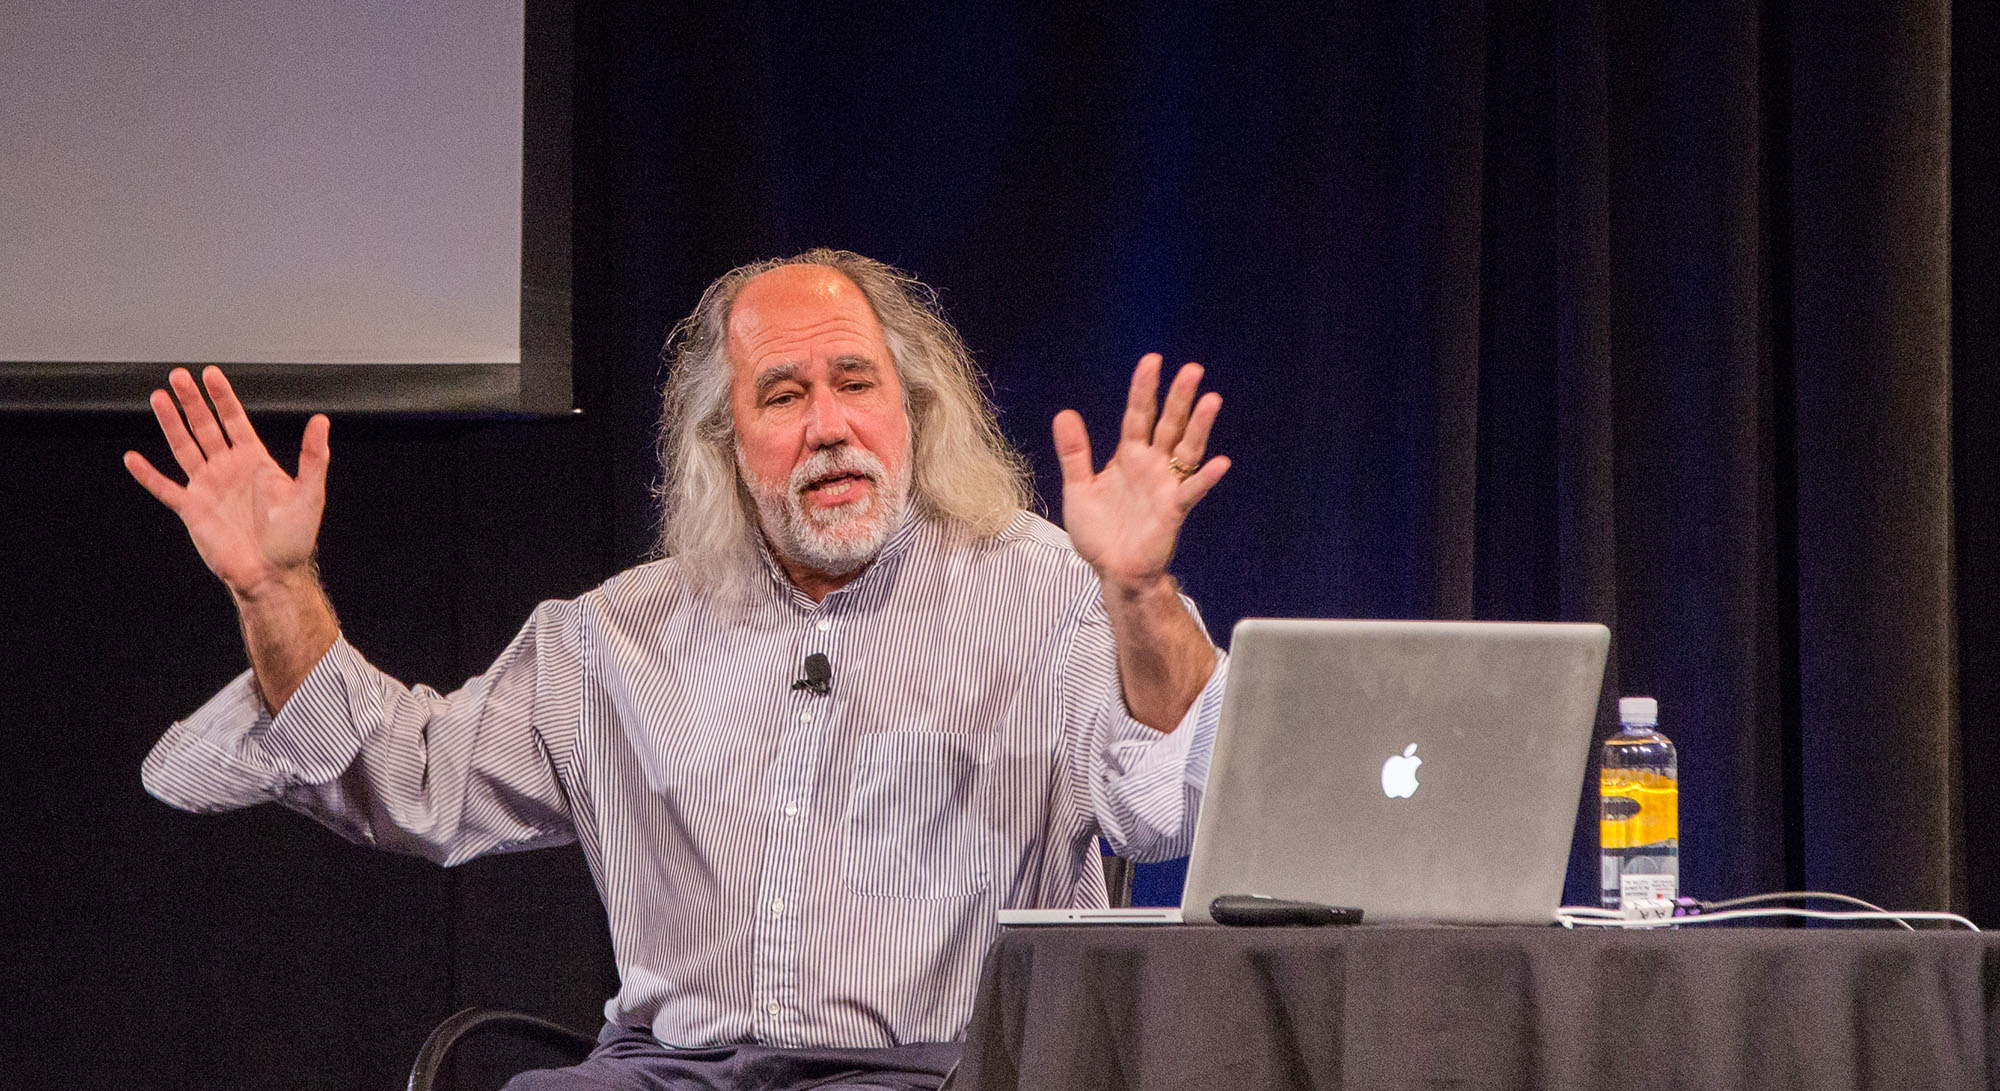 IBM Fellow Grady Booch talks about the limitations and possibilities of software.